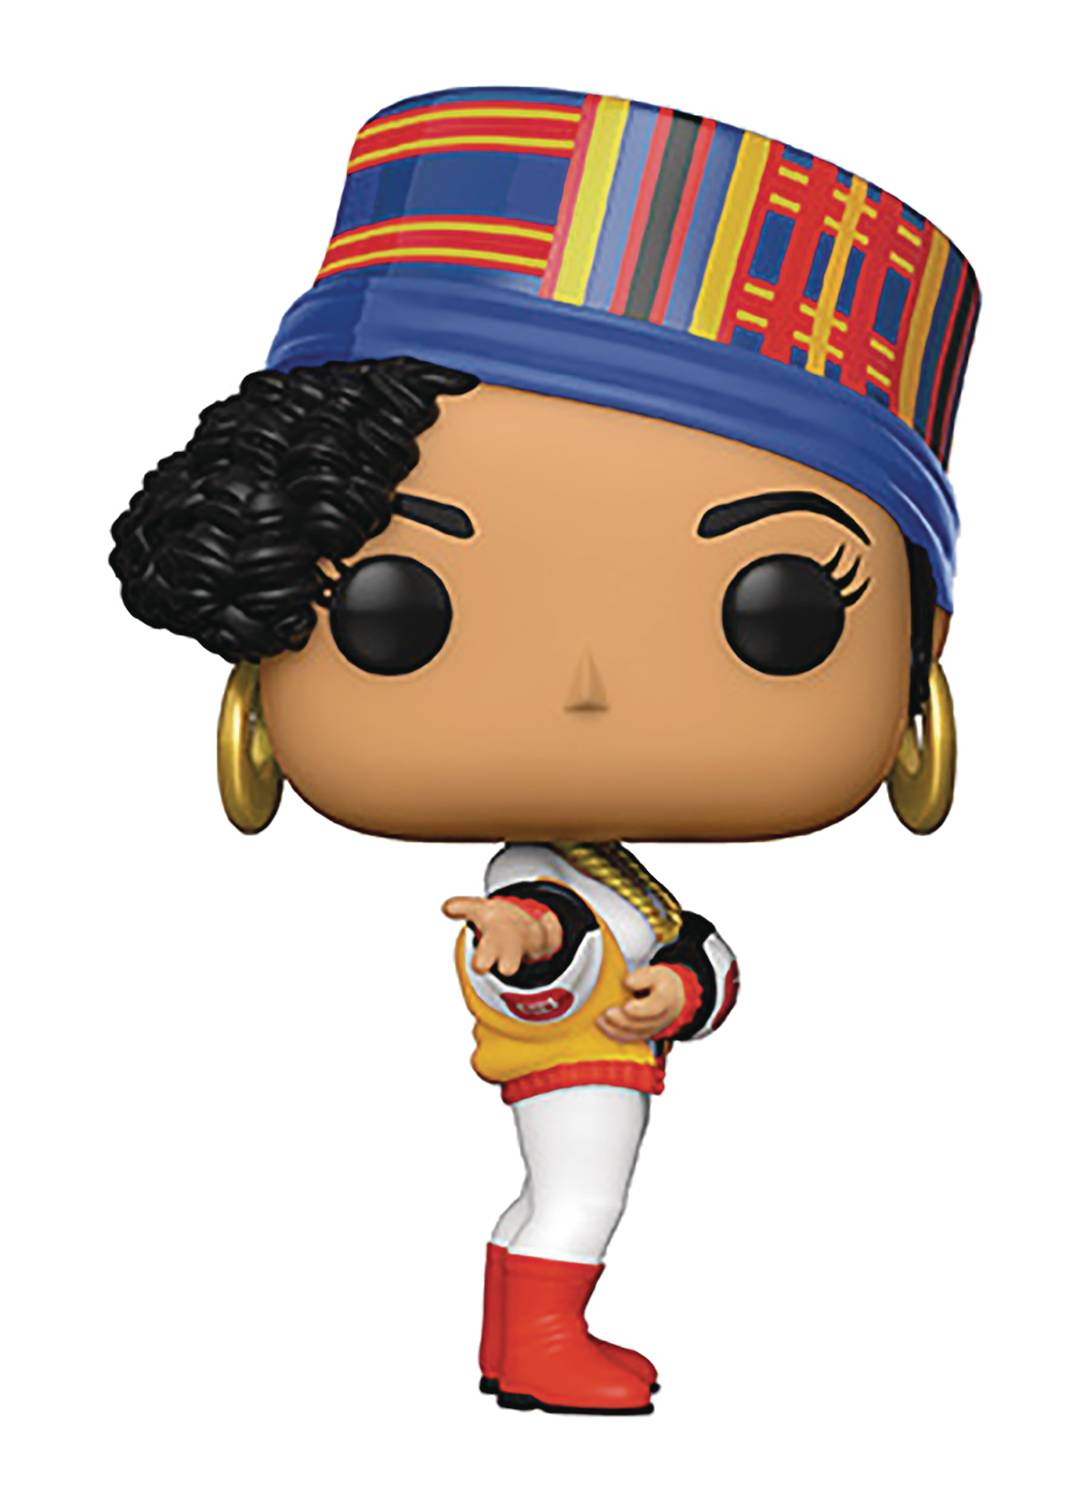 POP ROCKS SALT N PEPA SALT VINYL FIGURE